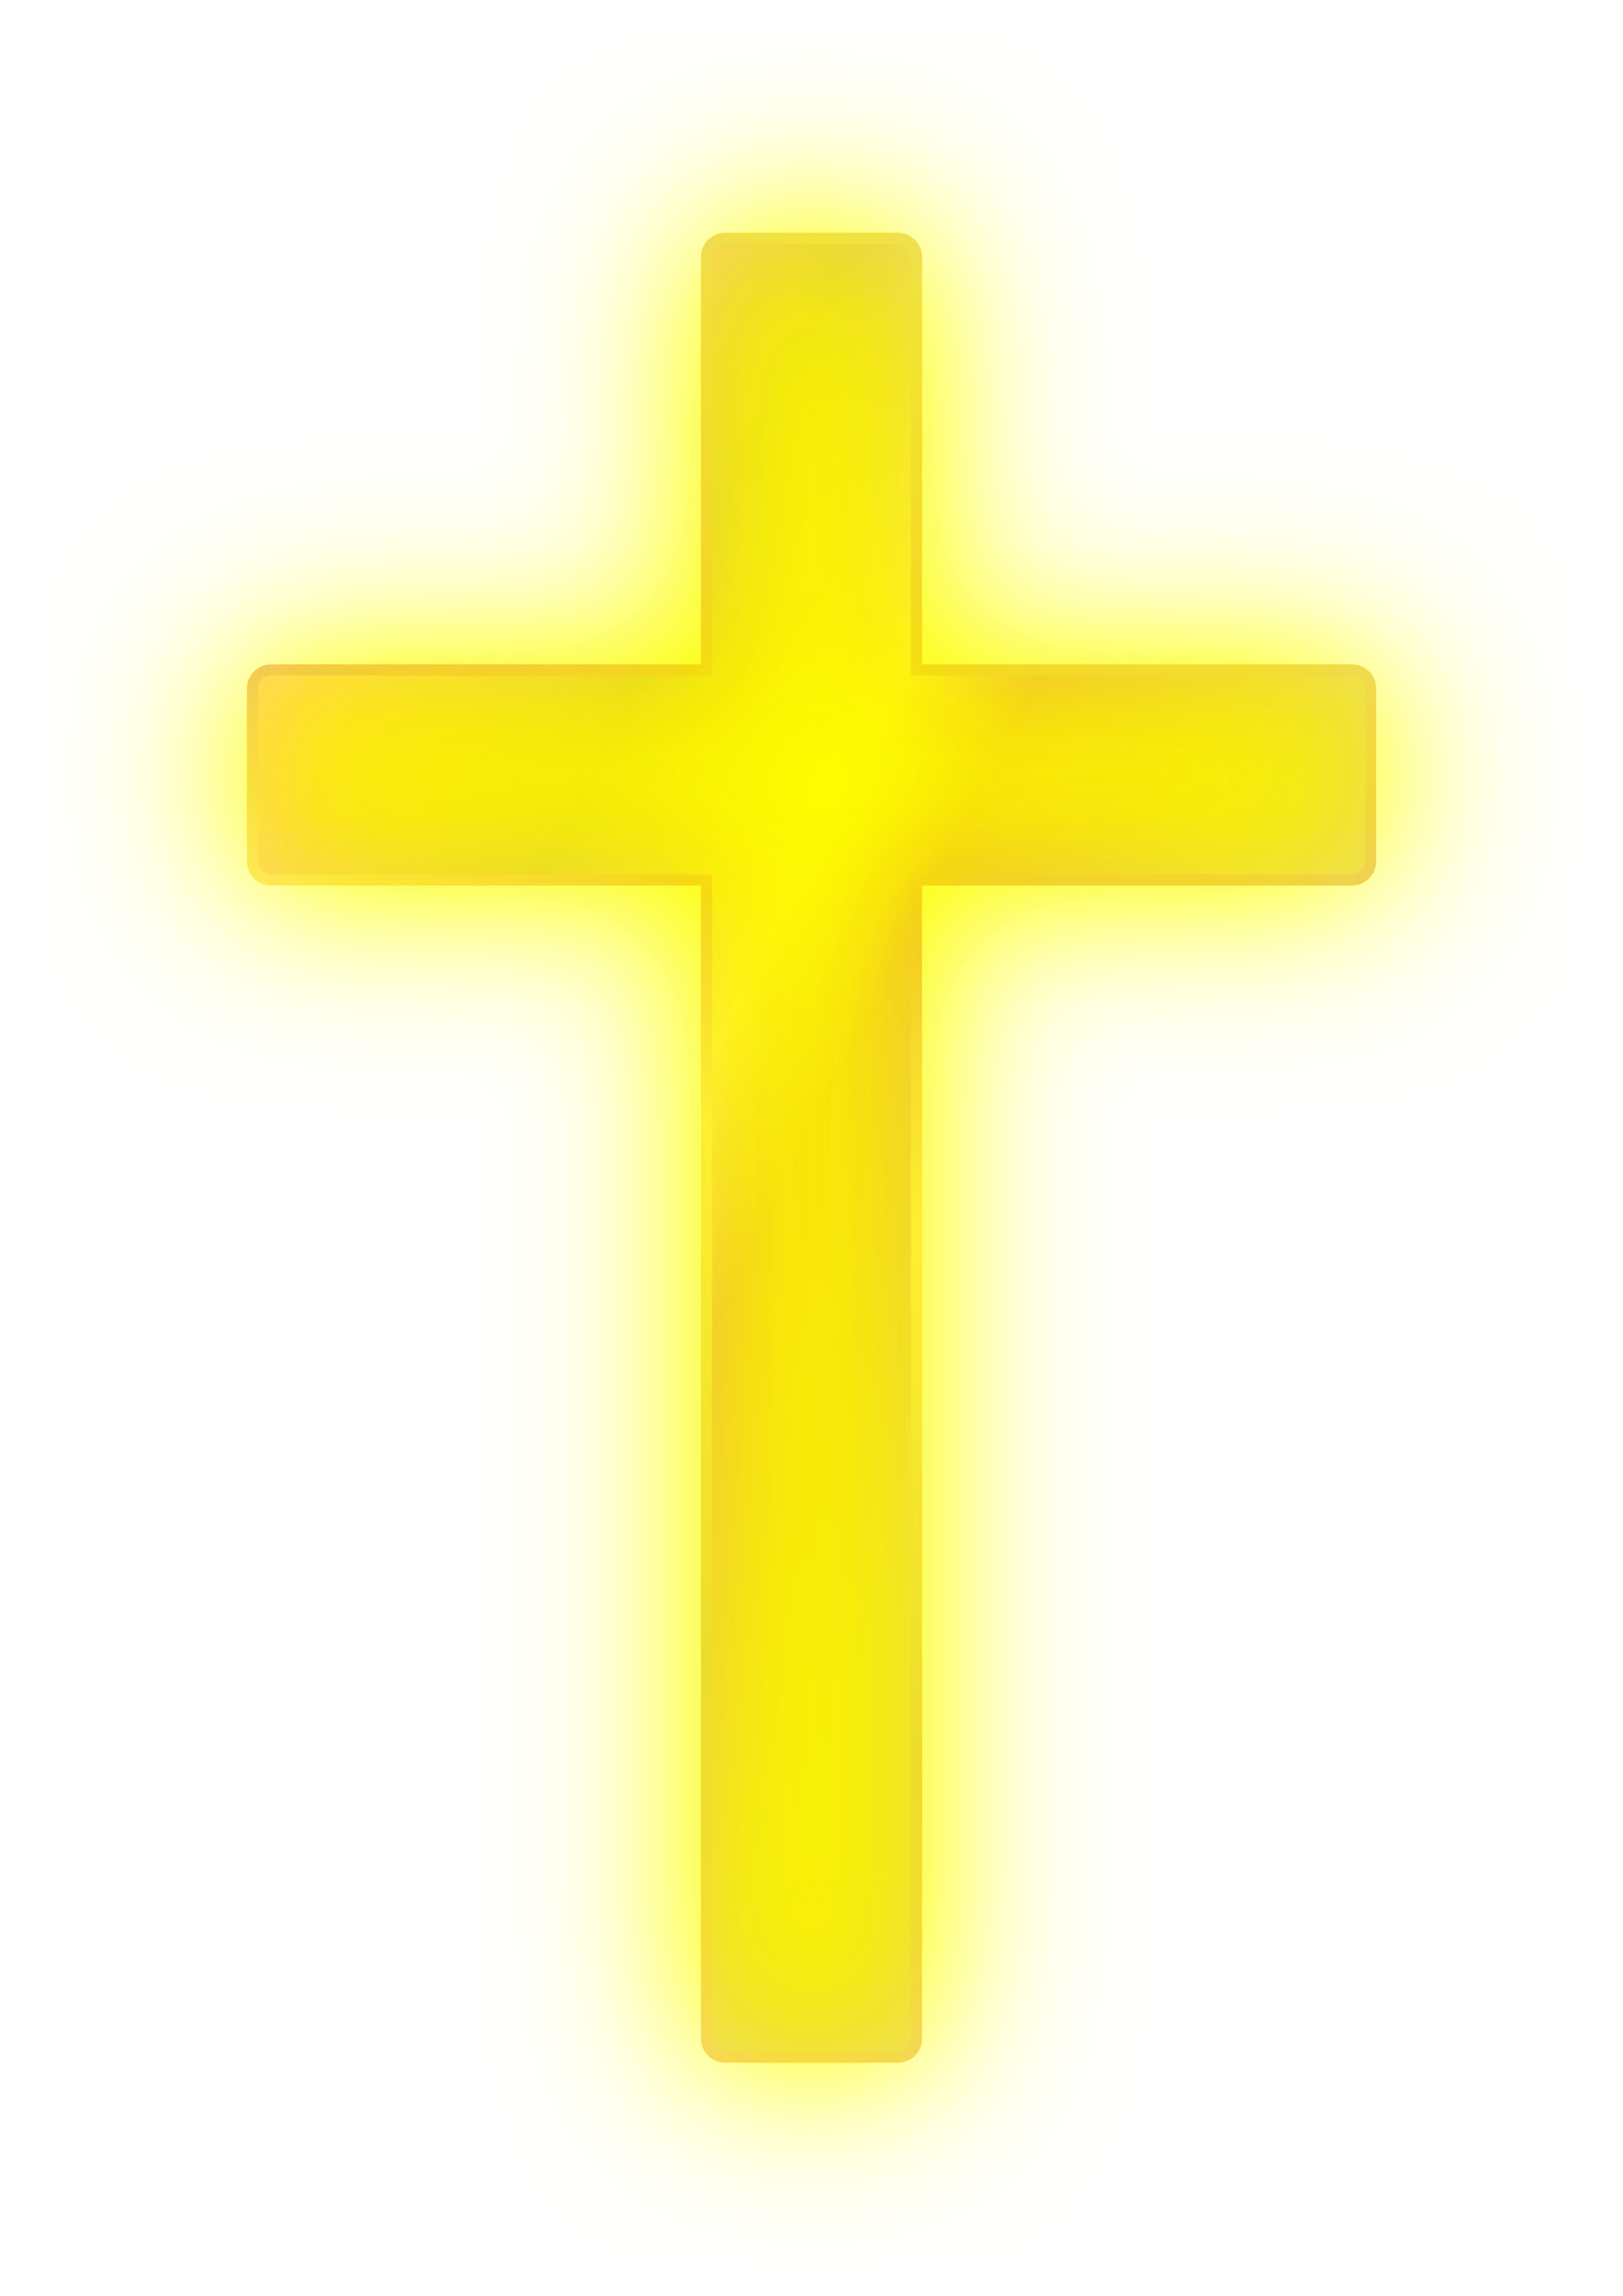 Clipart - Golden Cross image royalty free library